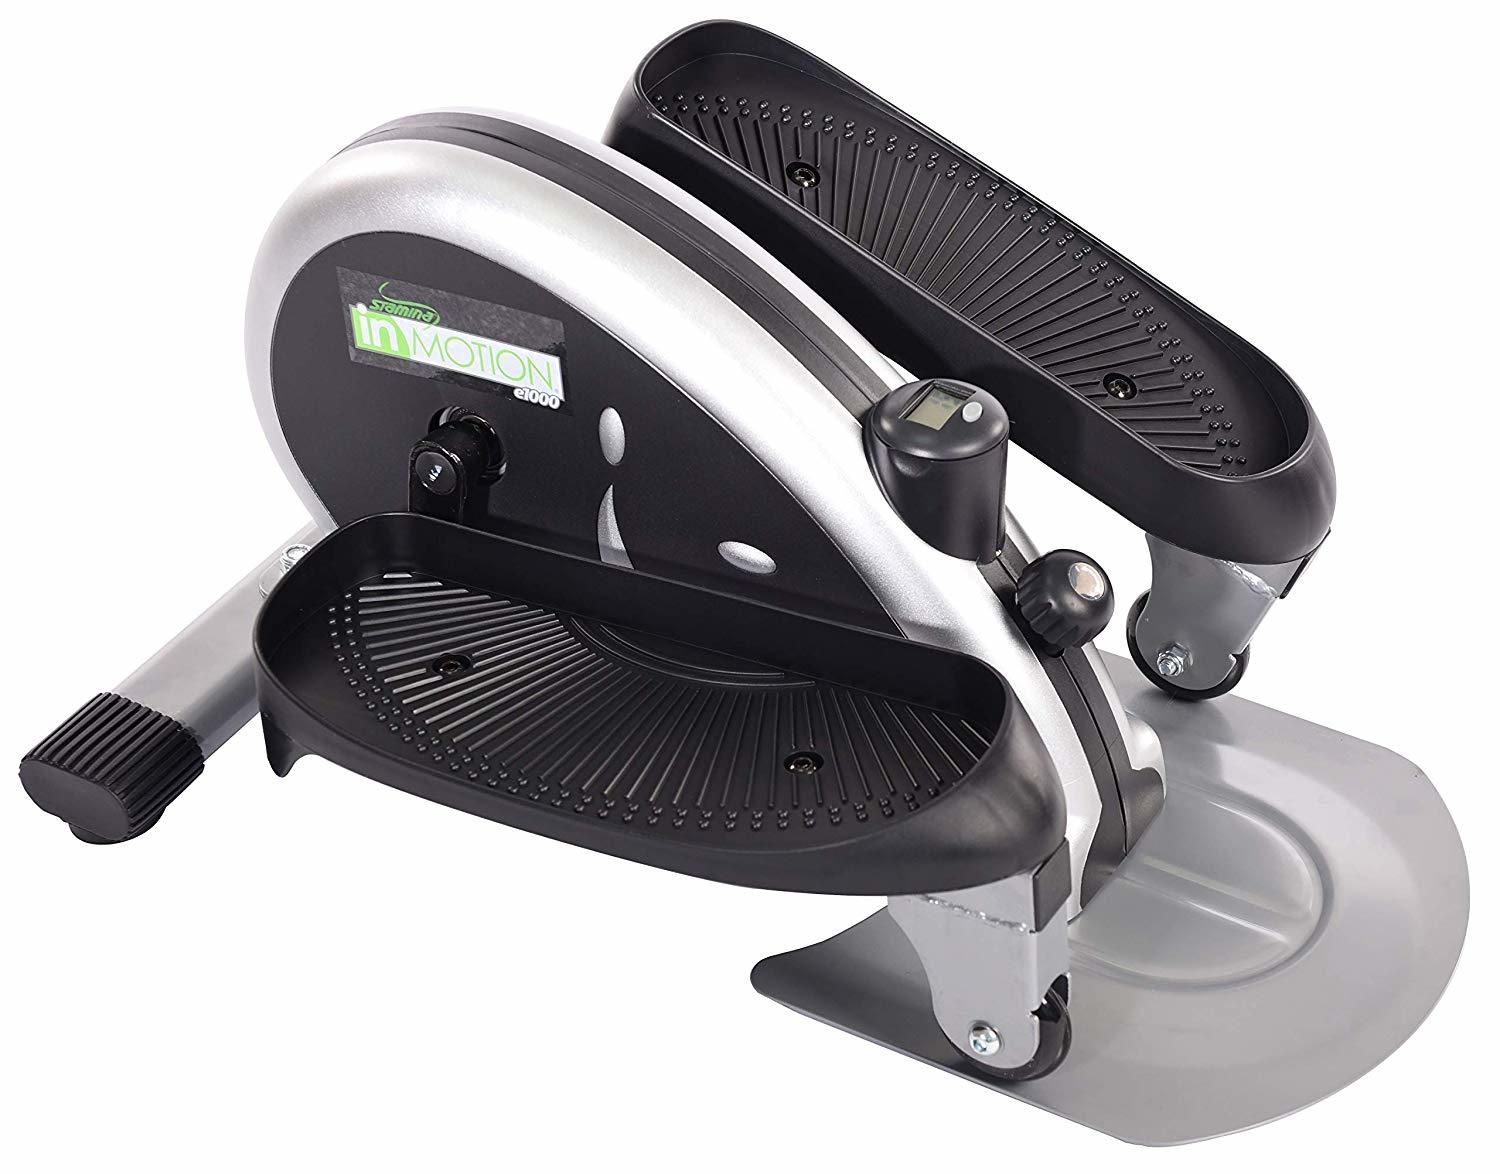 Stamina In Motion E1000 Can A Compact Elliptical Trainer